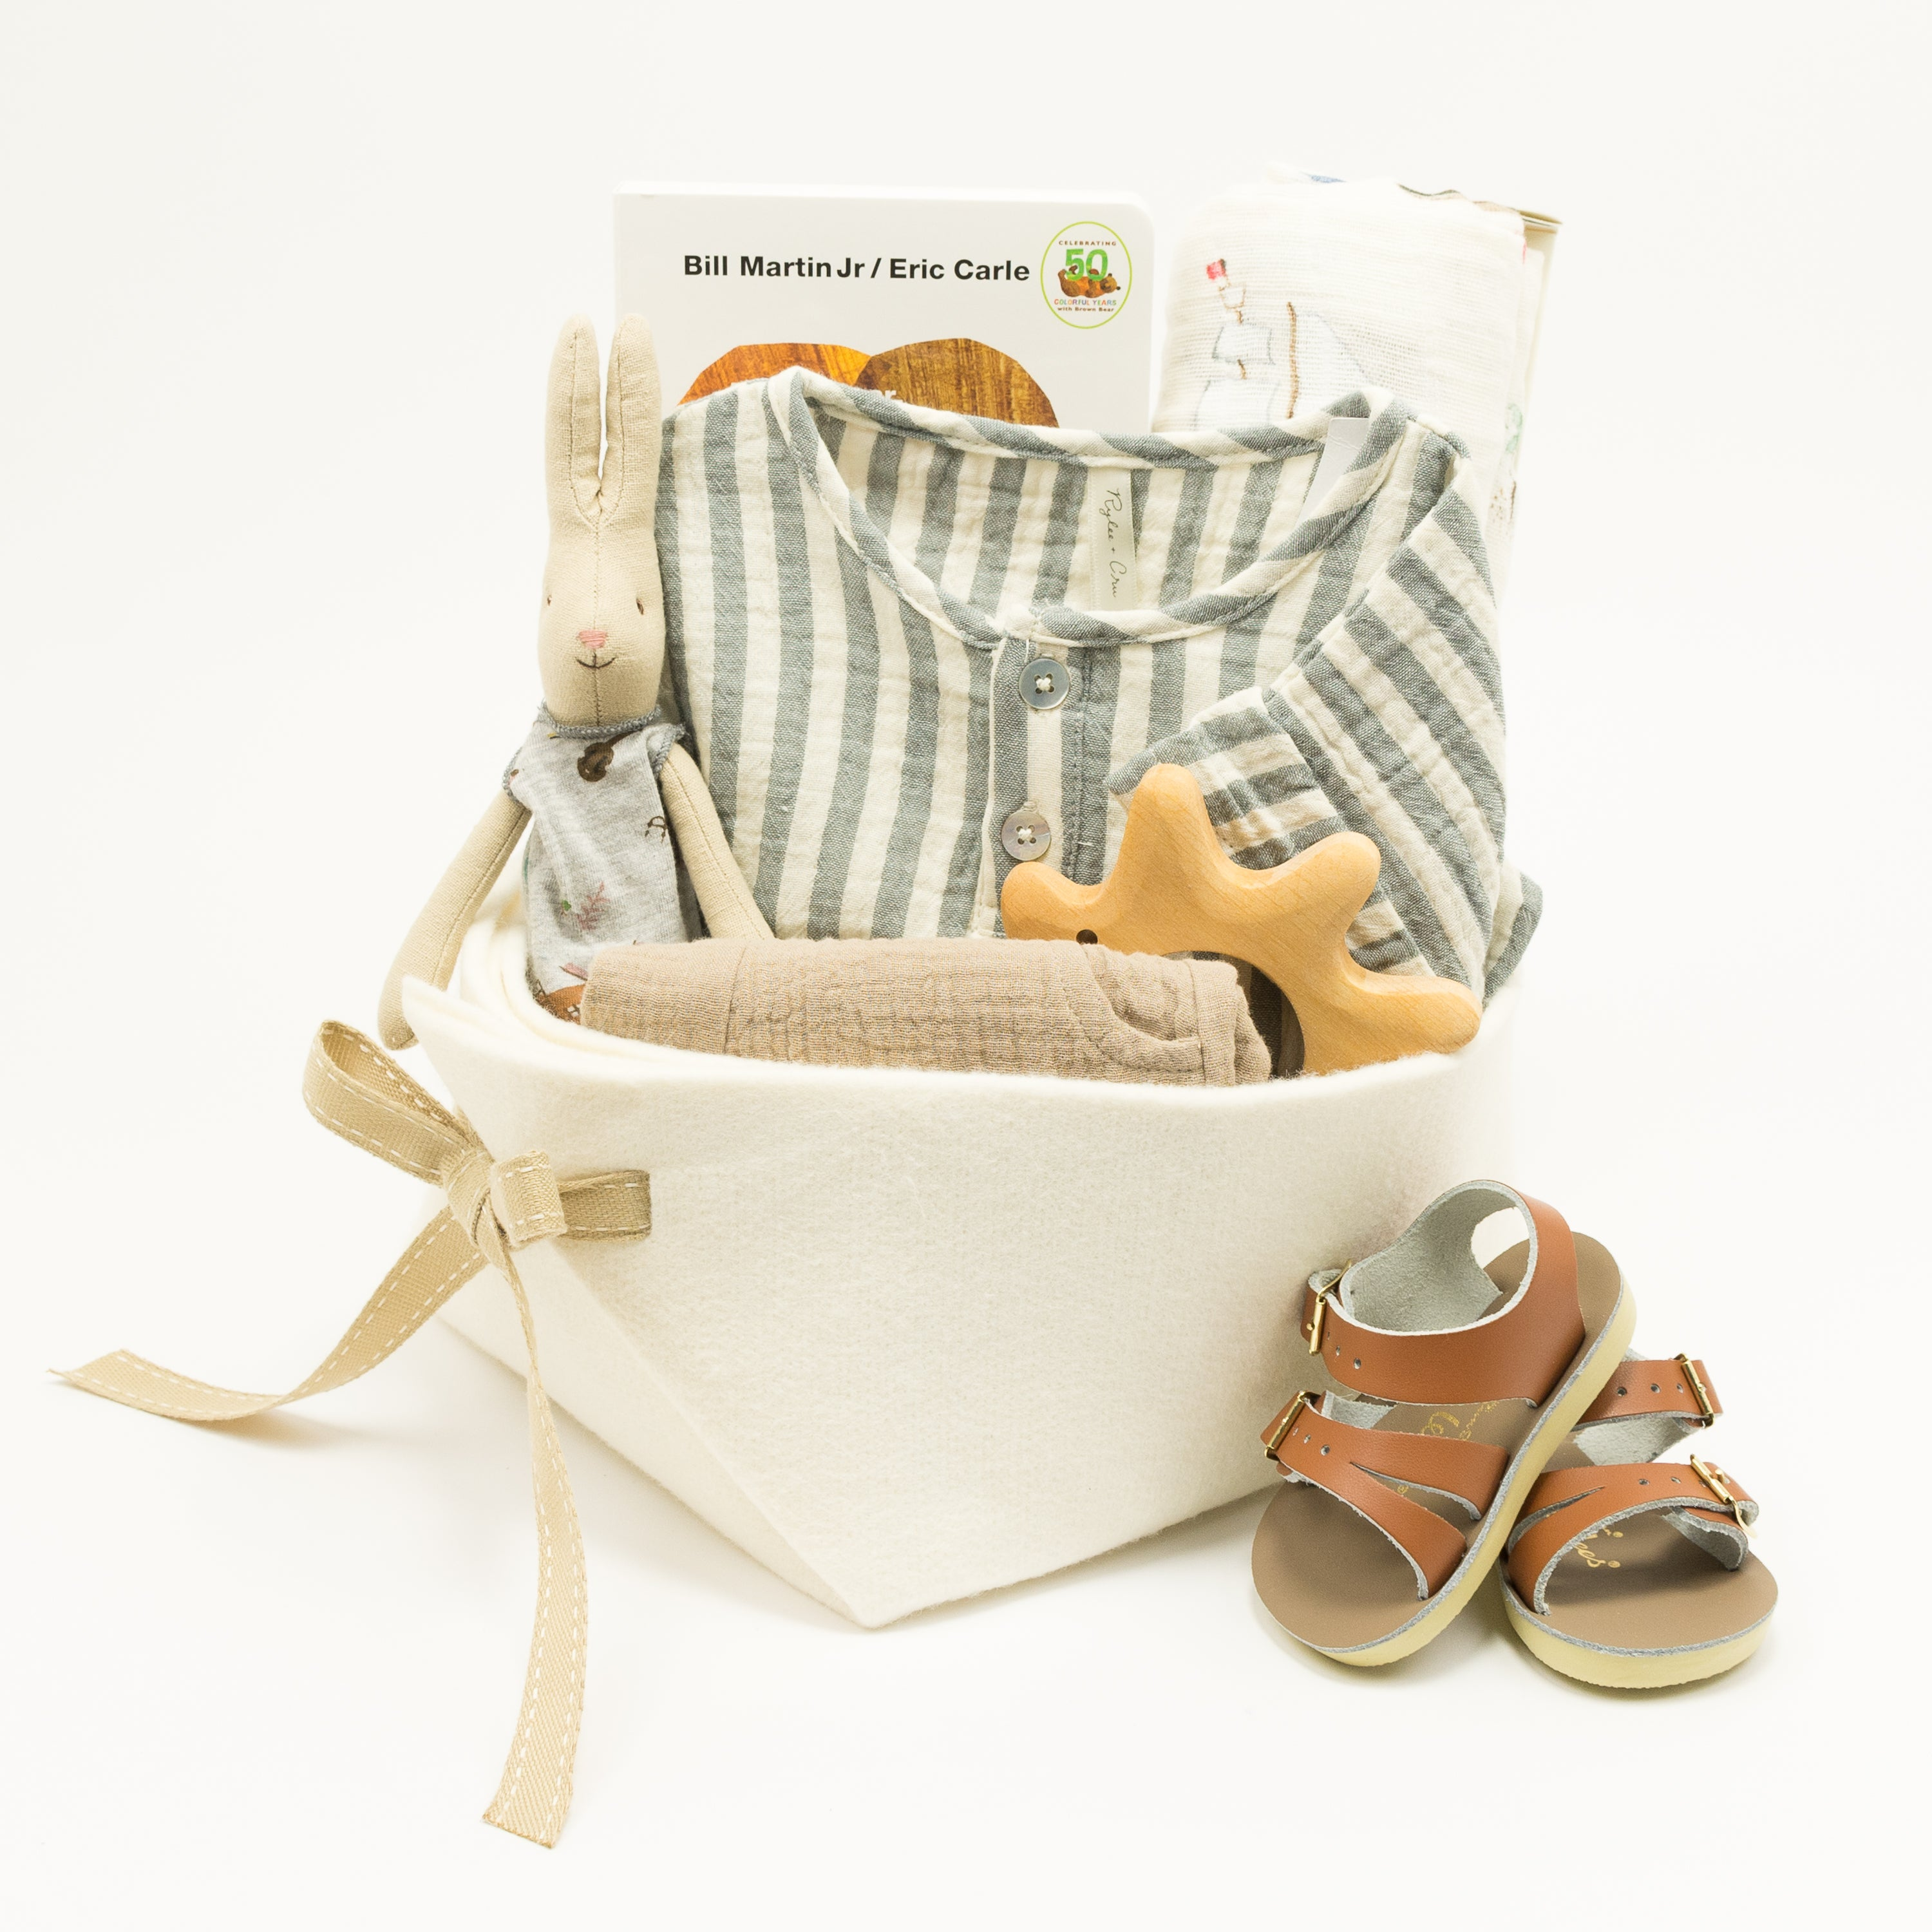 Trendy Baby Gift Basket featuring Rylee and Cru, perfect Corporate Baby Gift